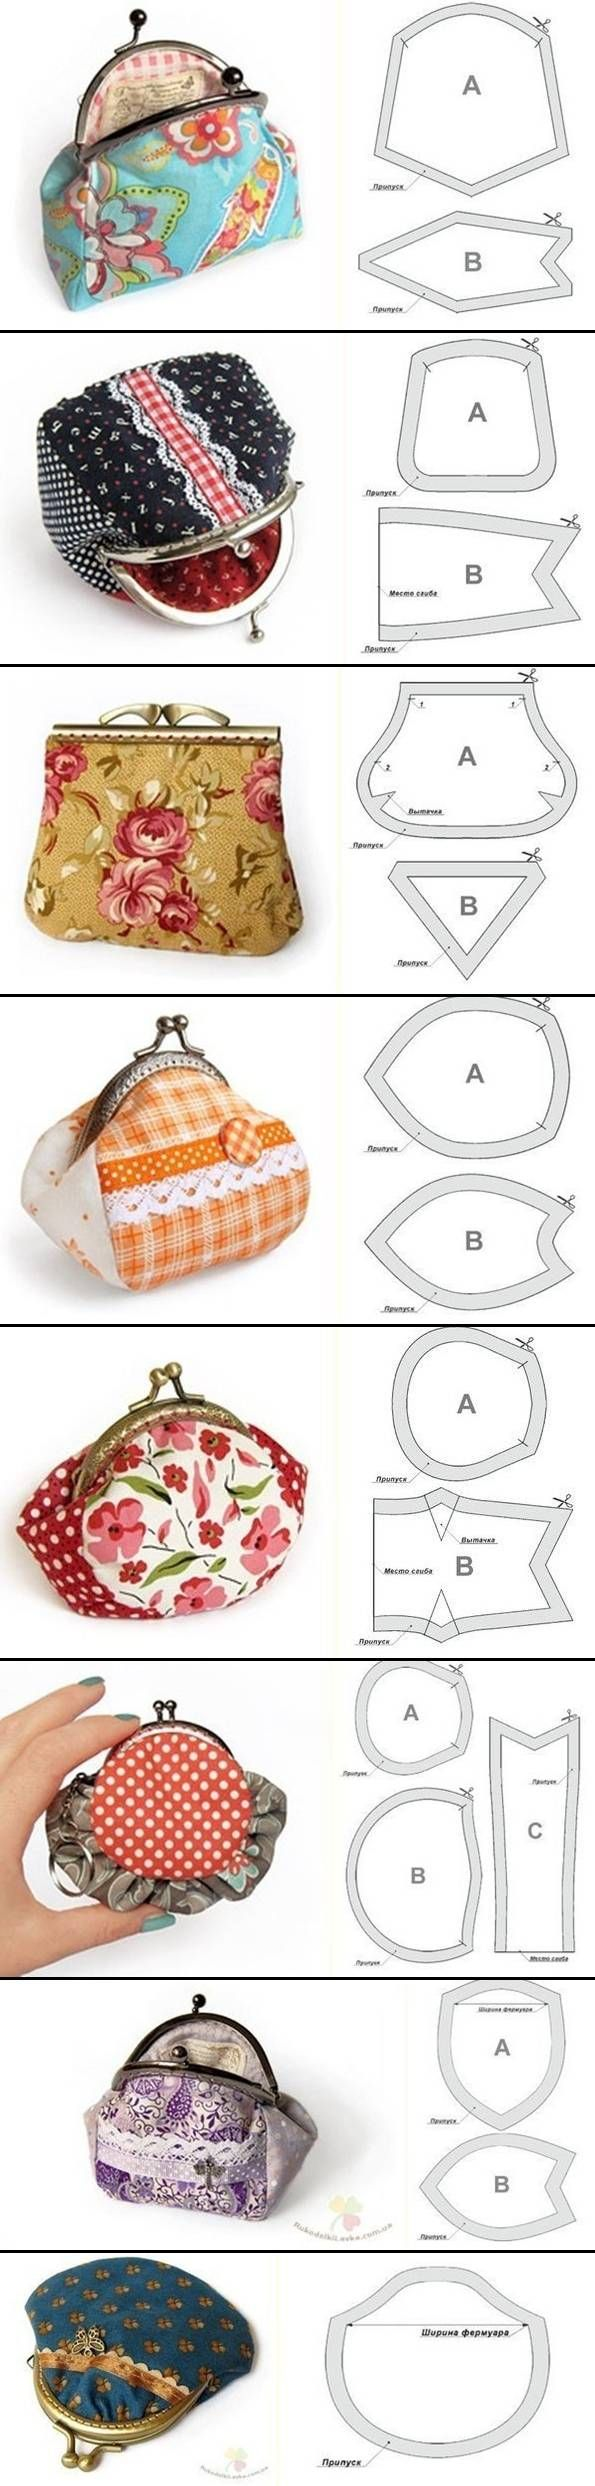 DIY Cute Purse Templates